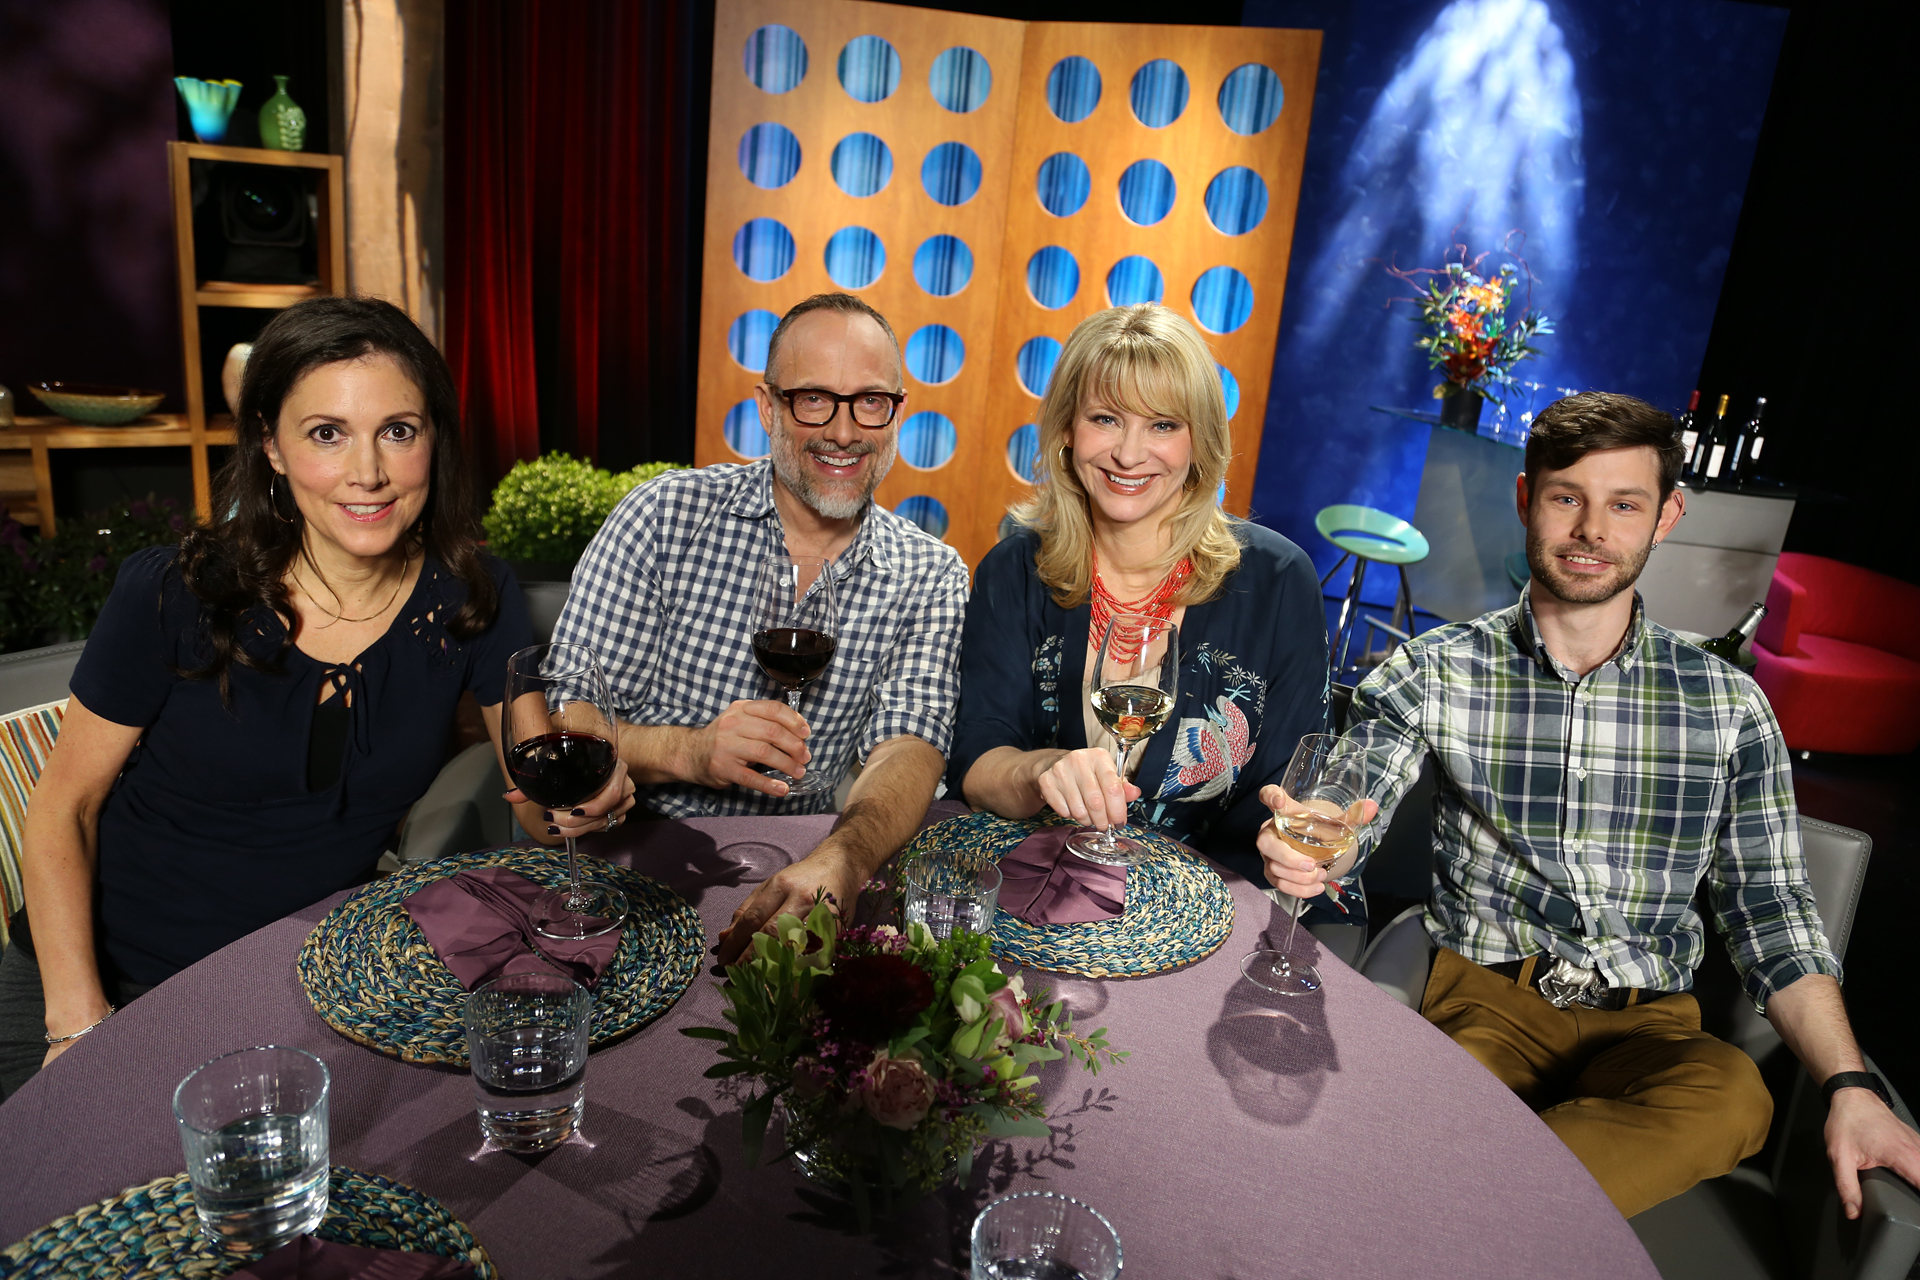 Host Leslie Sbrocco and guests on the set of season 12 episode 5.